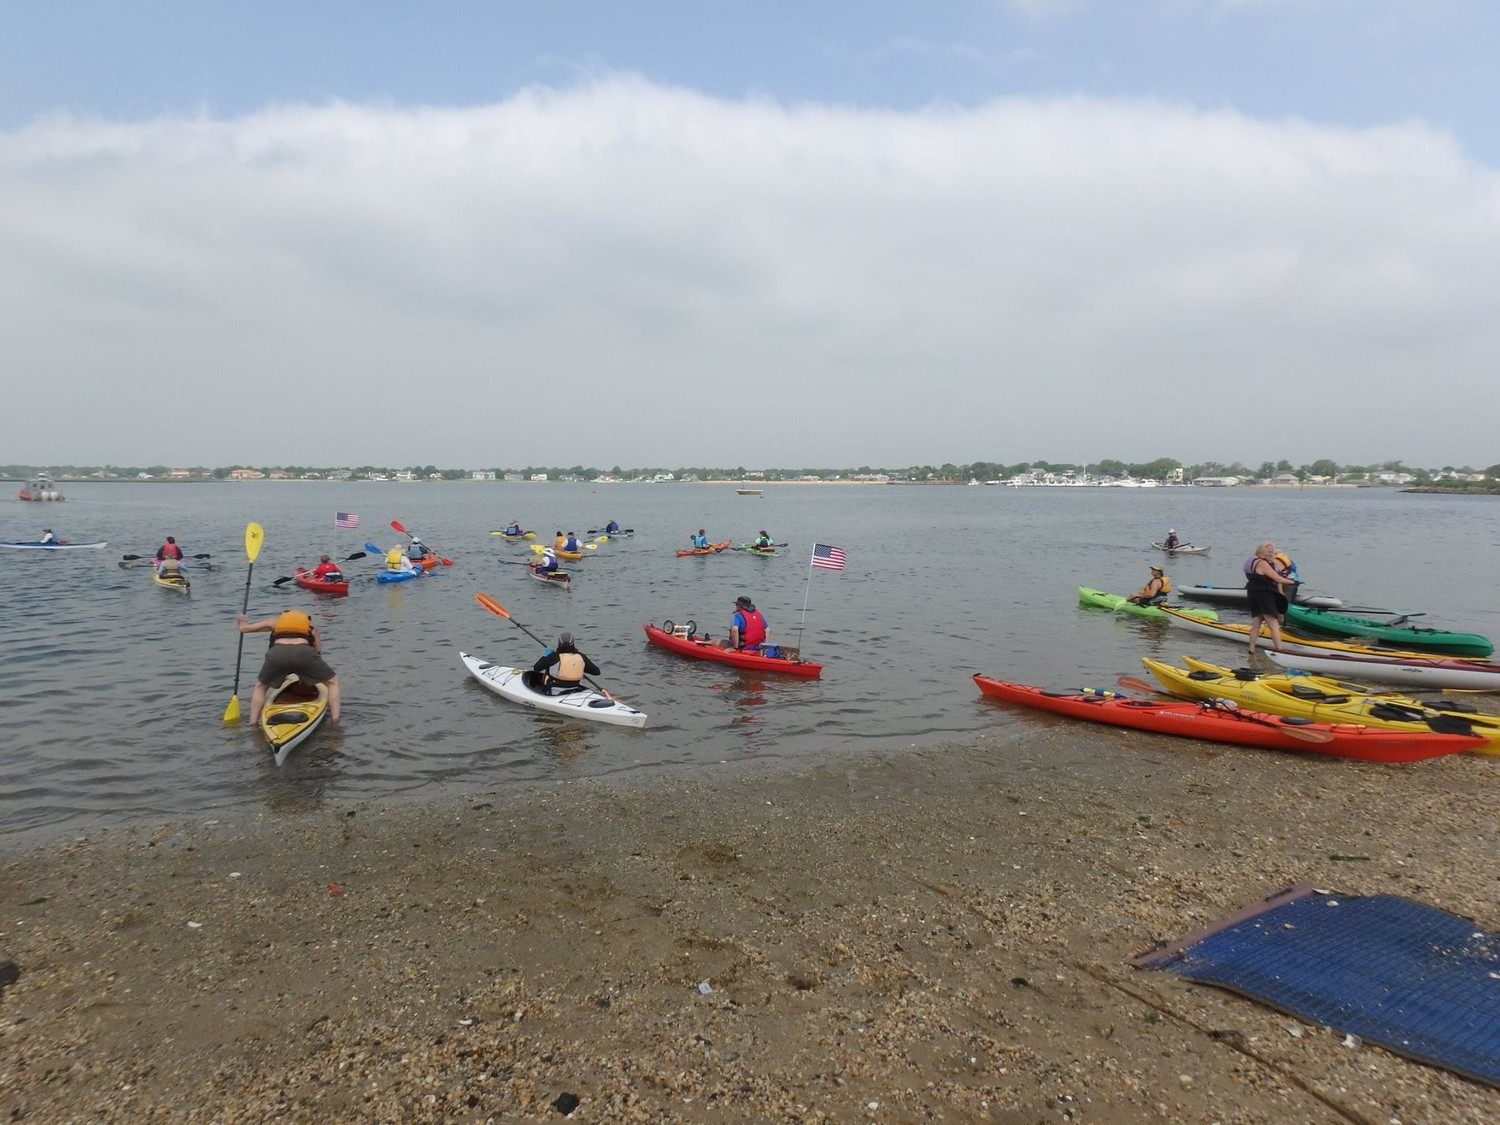 Hundreds of residents are expected to participate in the inaugural South Shore Blueway Festival at Hewlett Point Park in East Rockaway on Saturday.